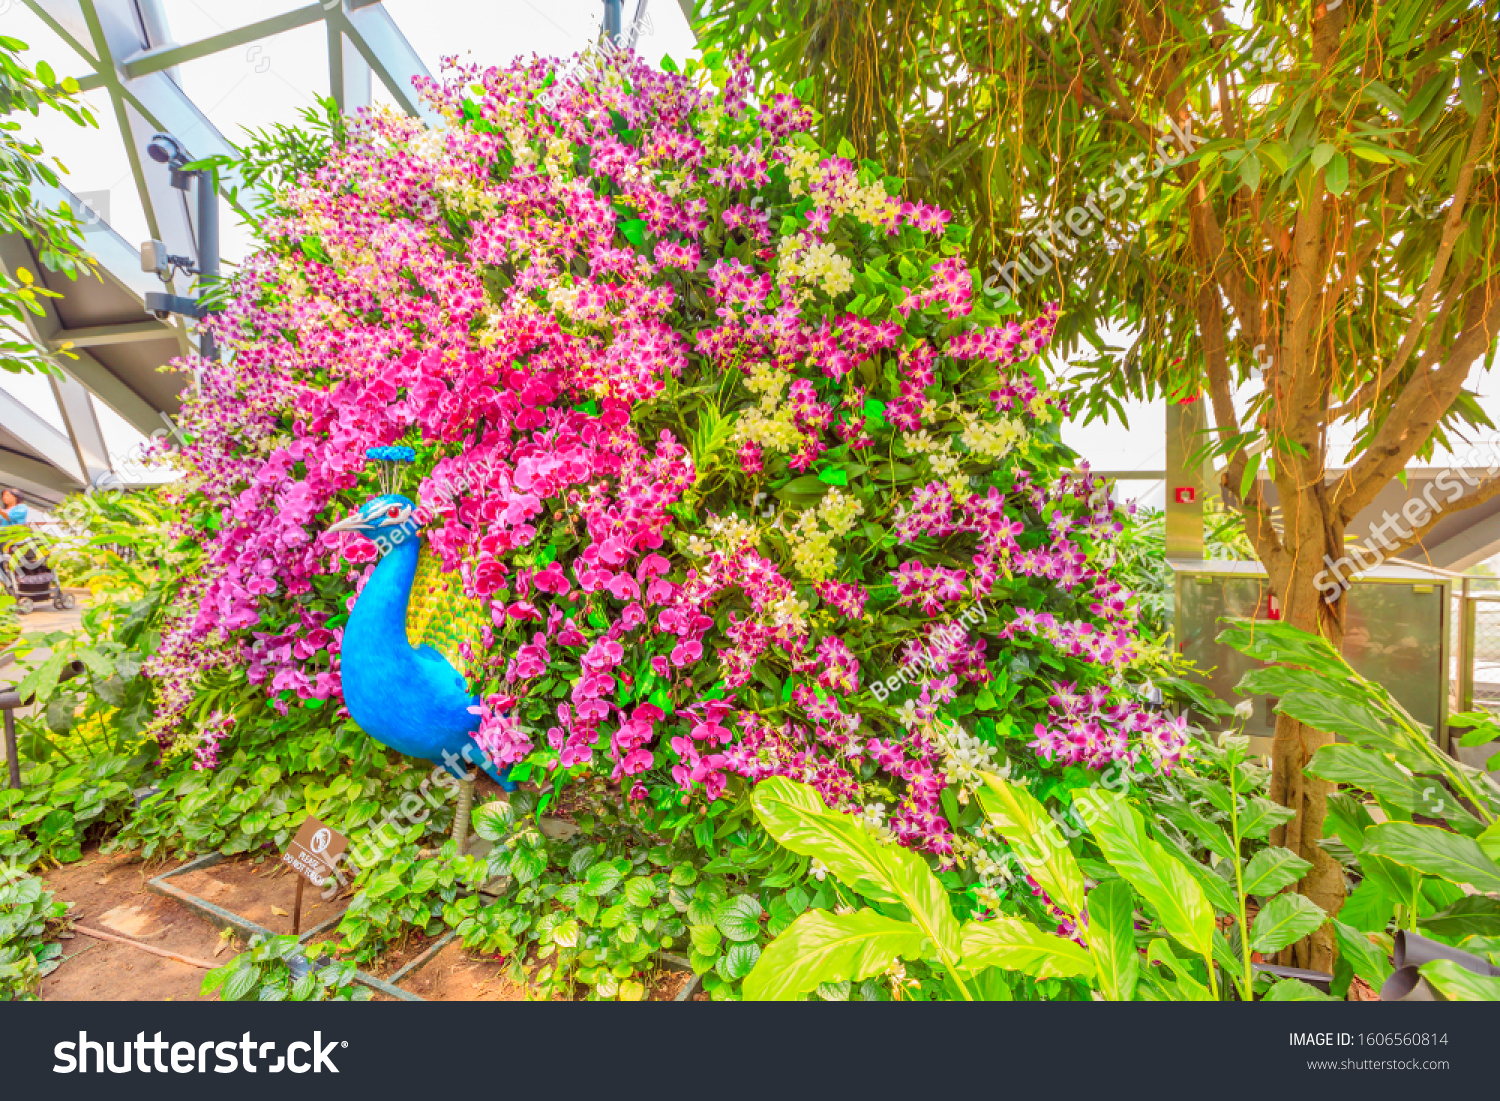 Singapore Aug 8 2019 Peacock Flower Stock Photo Edit Now 1606560814